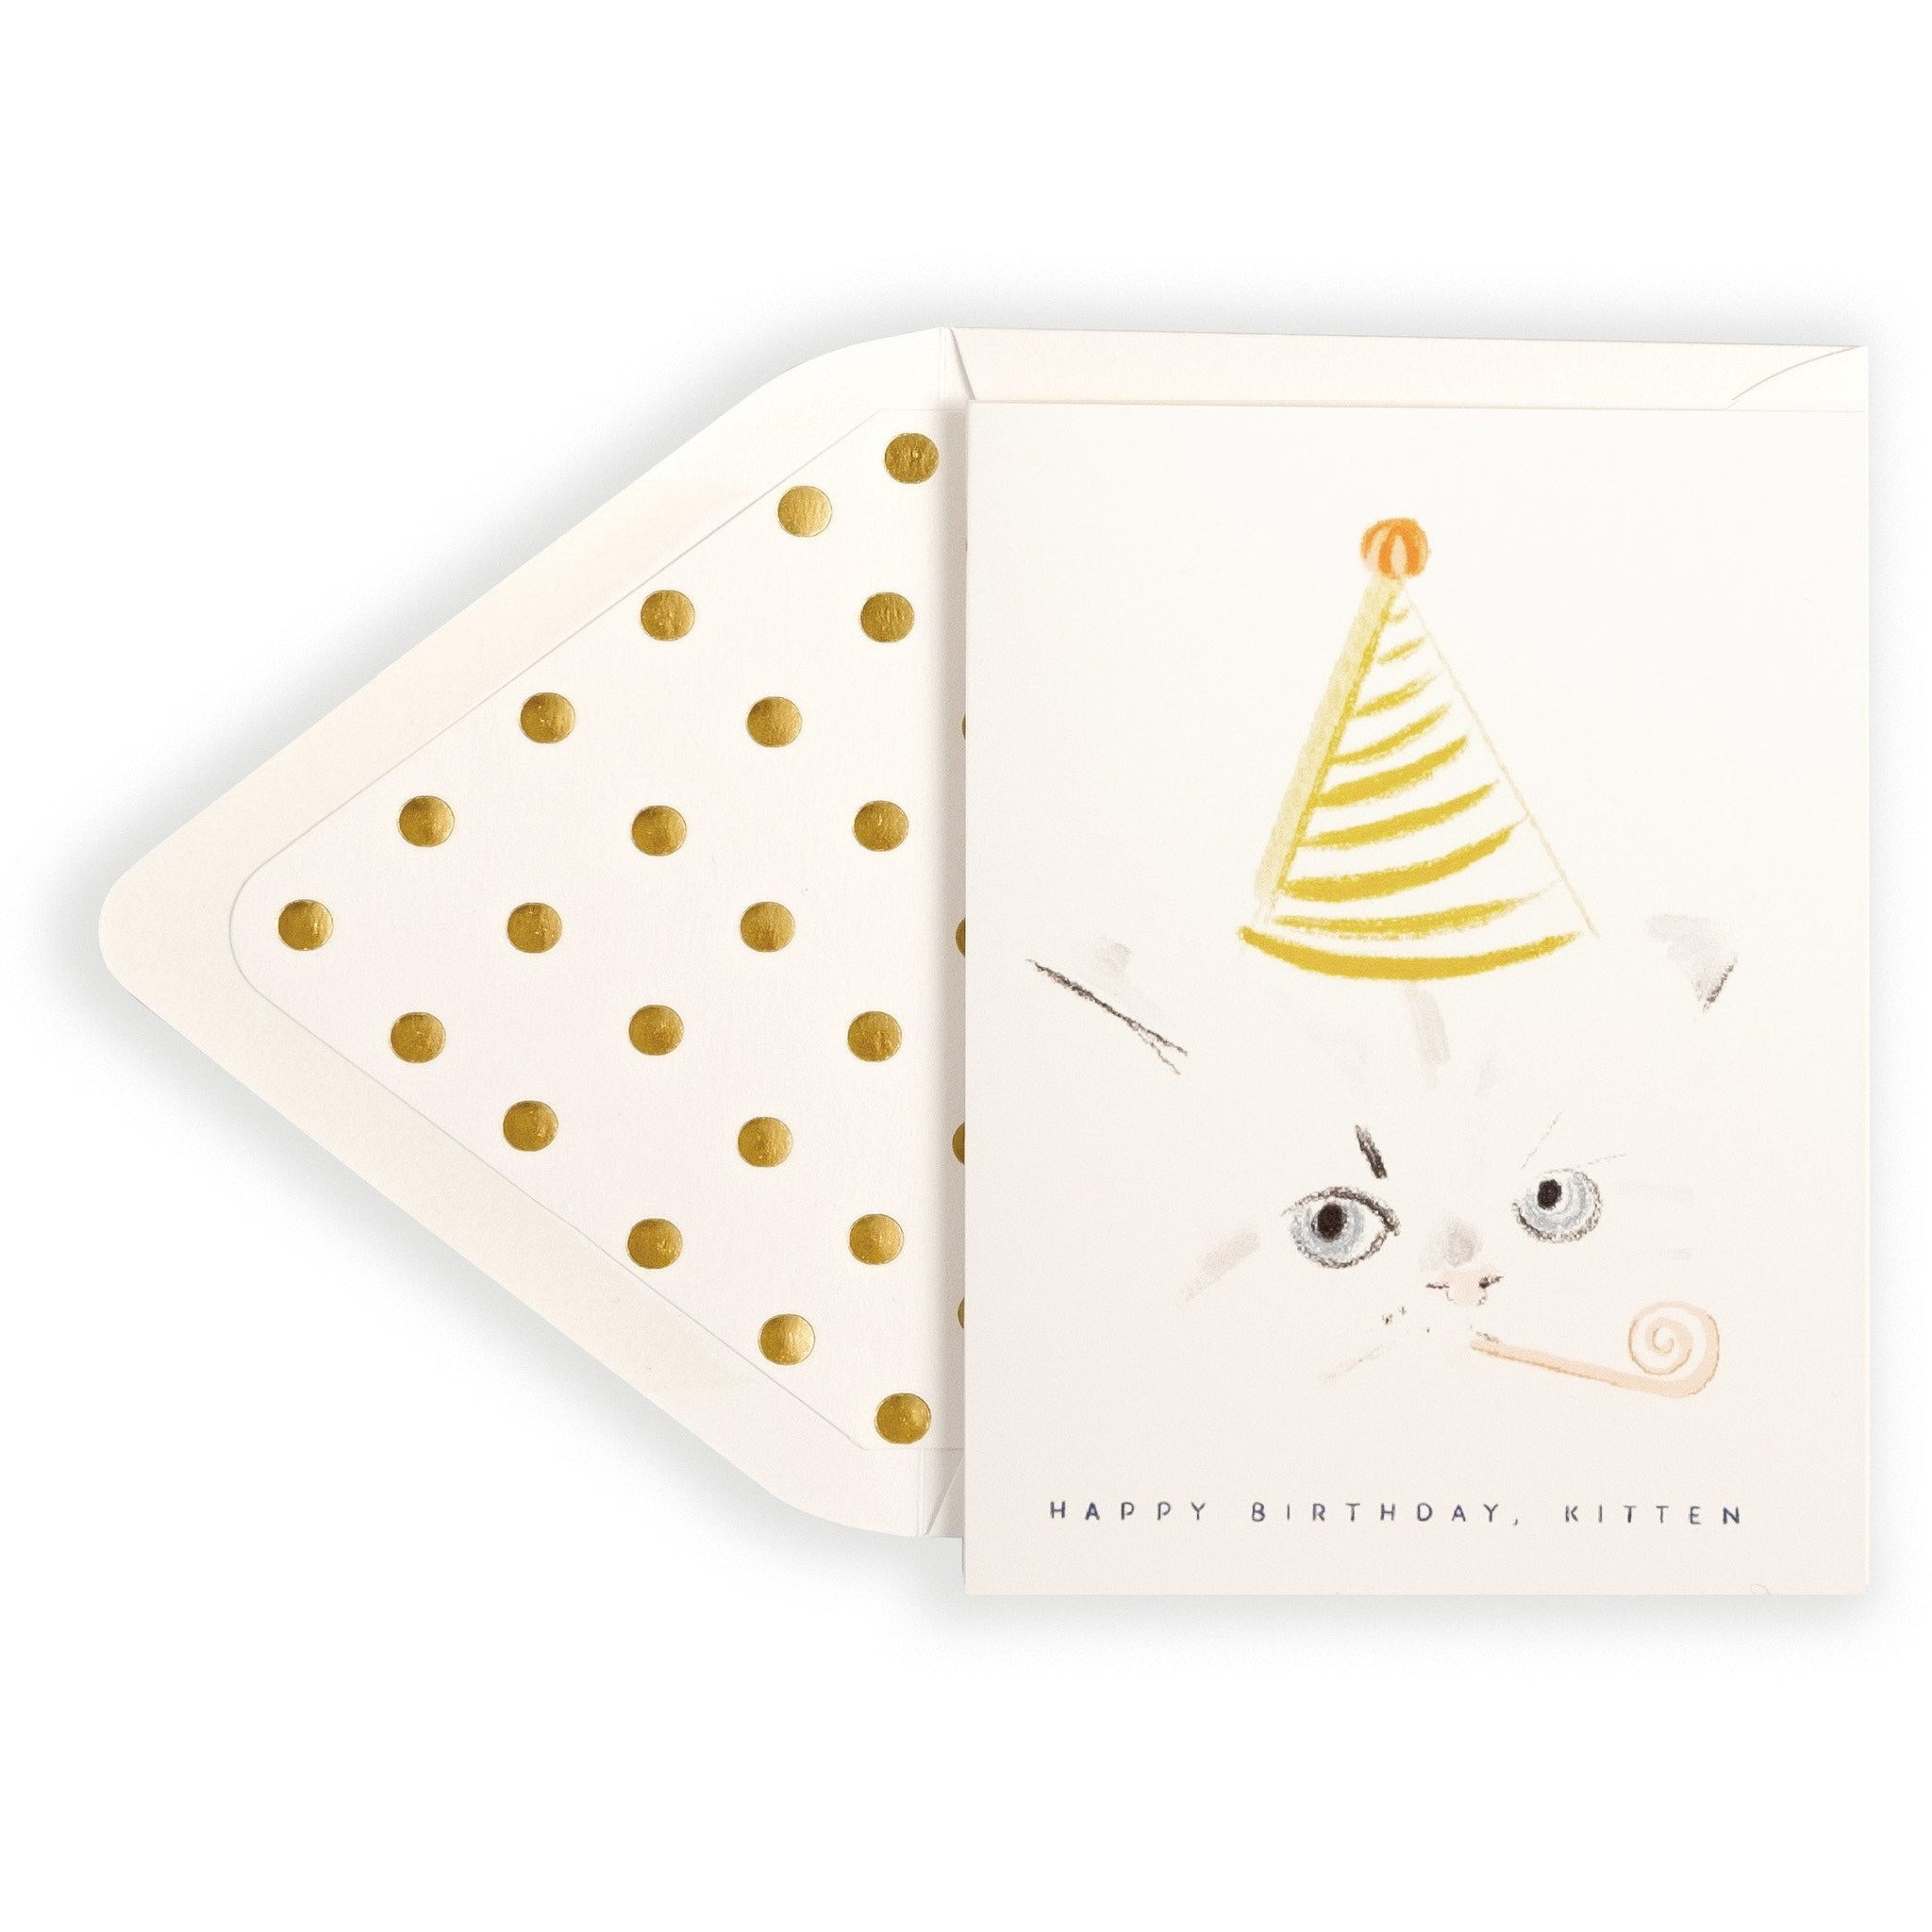 Adorable Kitten with Party Hat Happy Birthday Card and Envelope - The First Snow